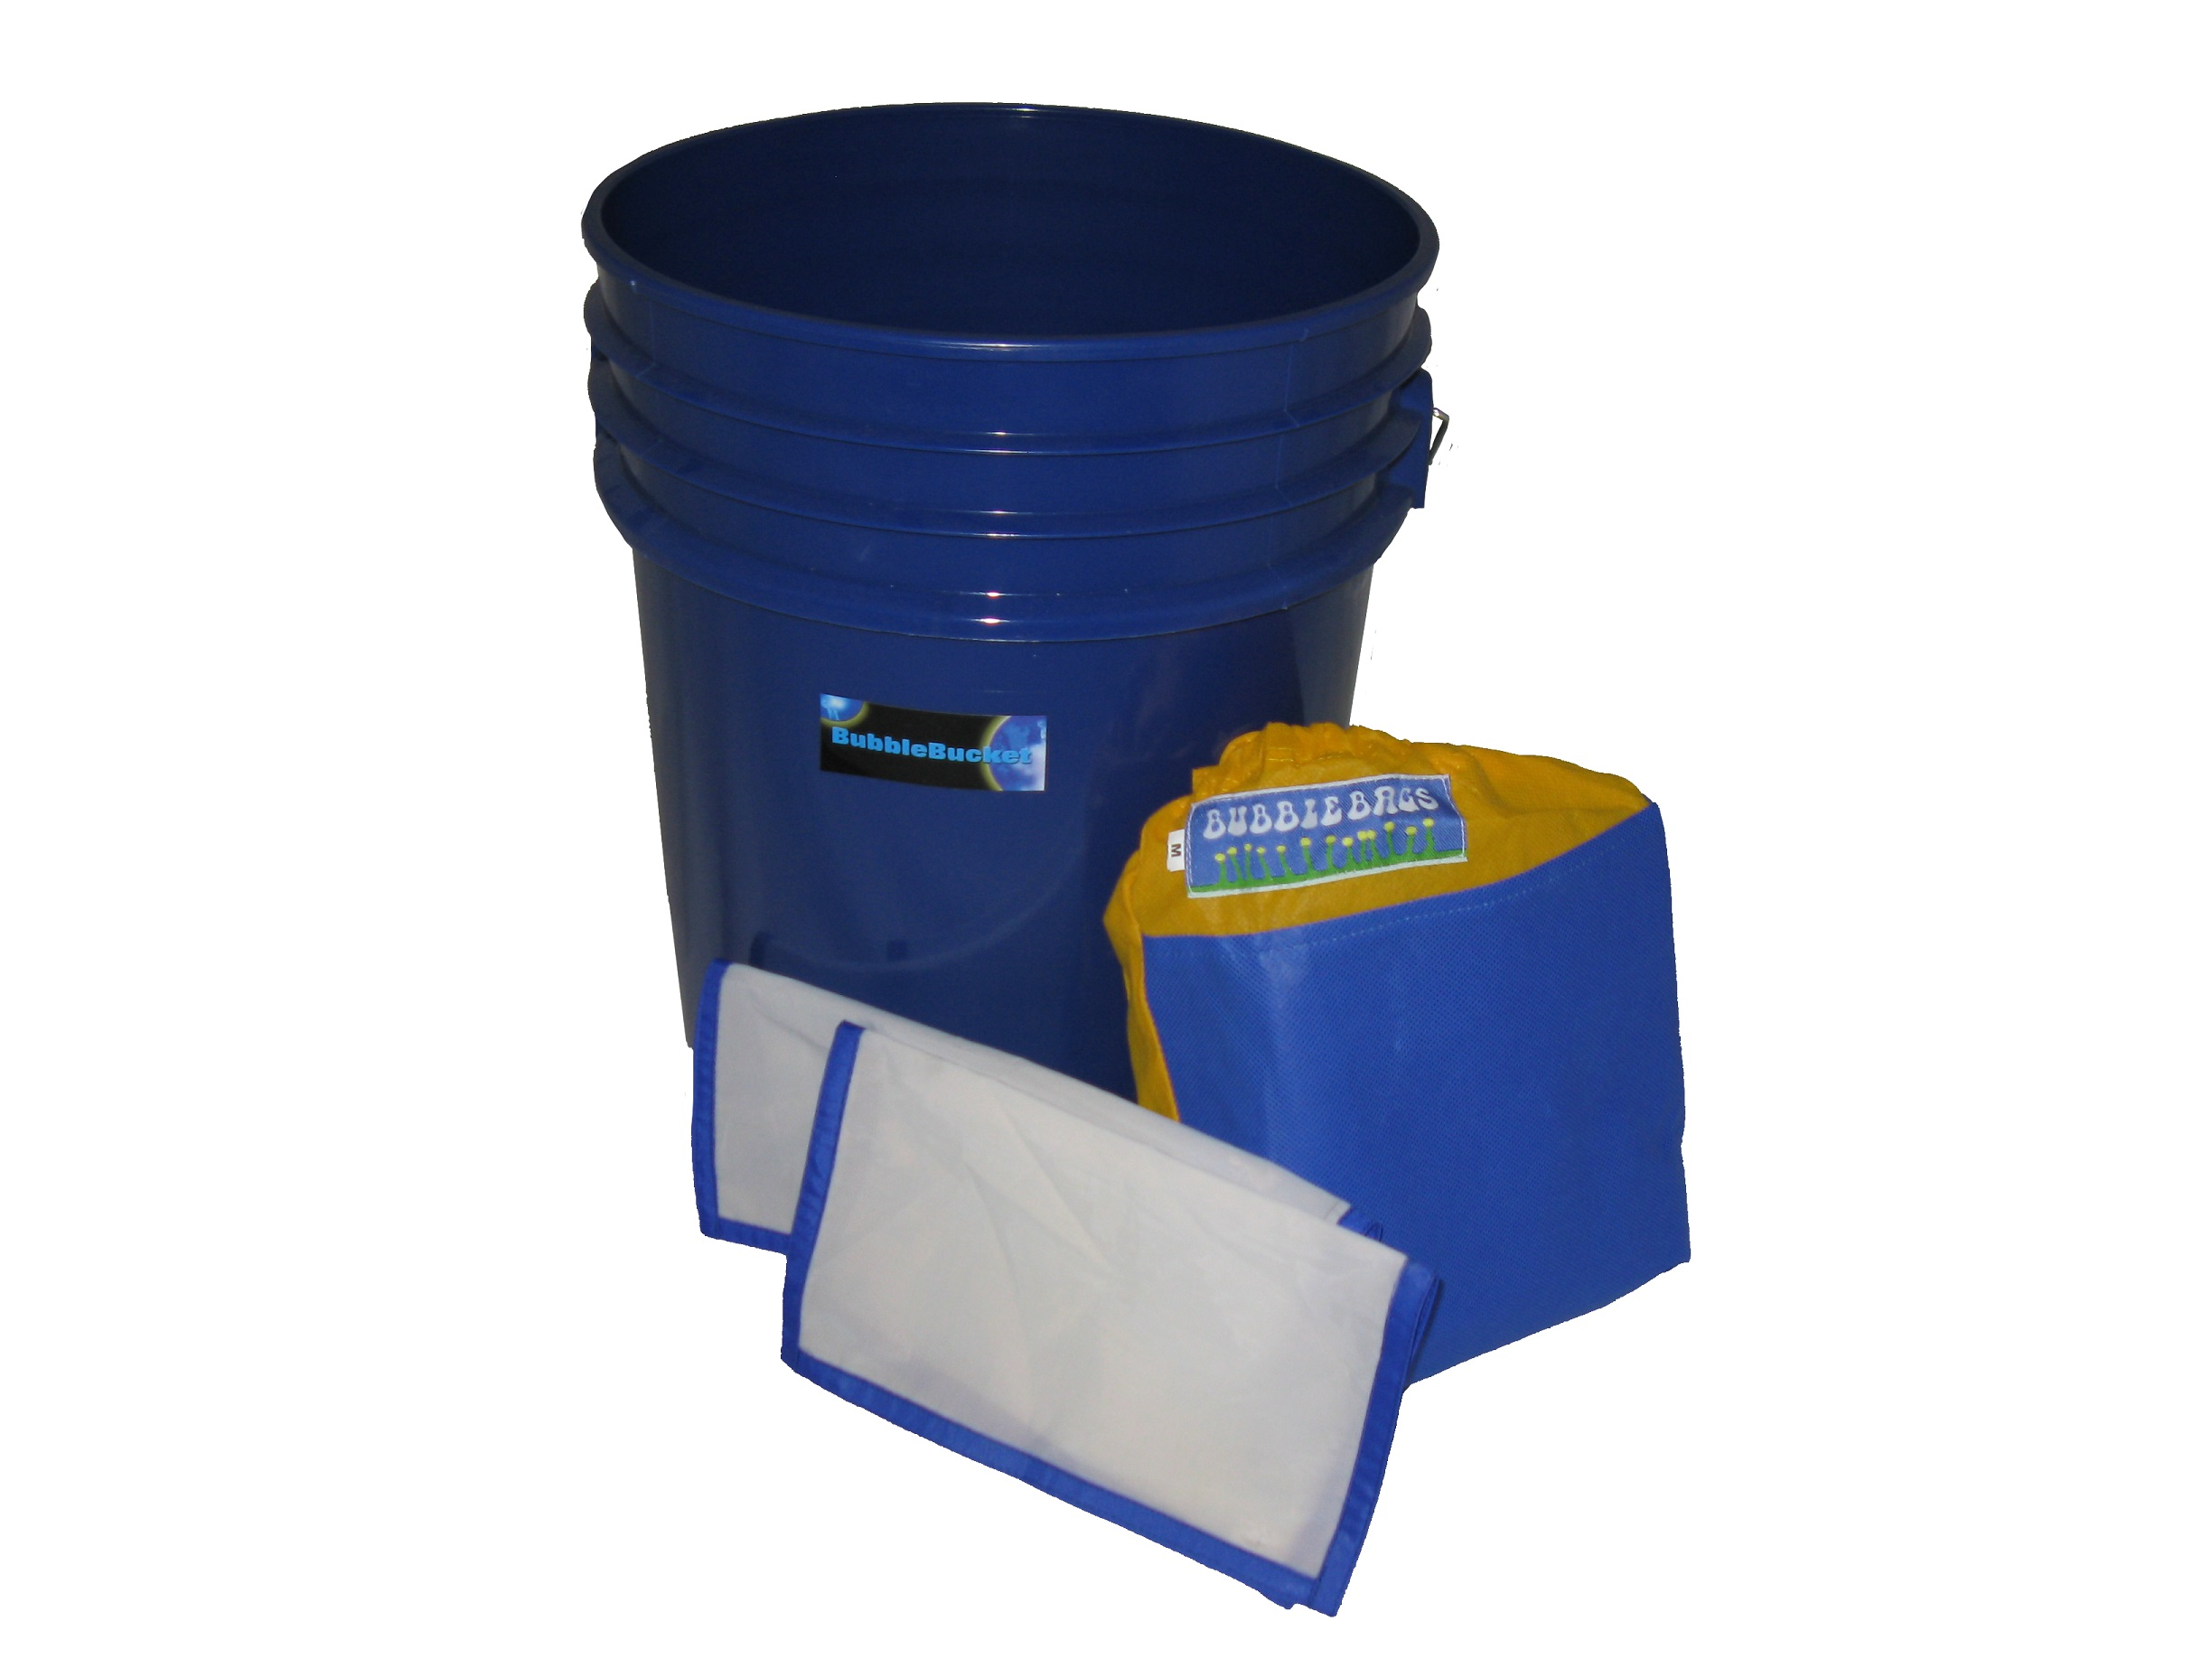 Standard 5 Gallon 4 Bag Kit: with Bucket (M4-B)